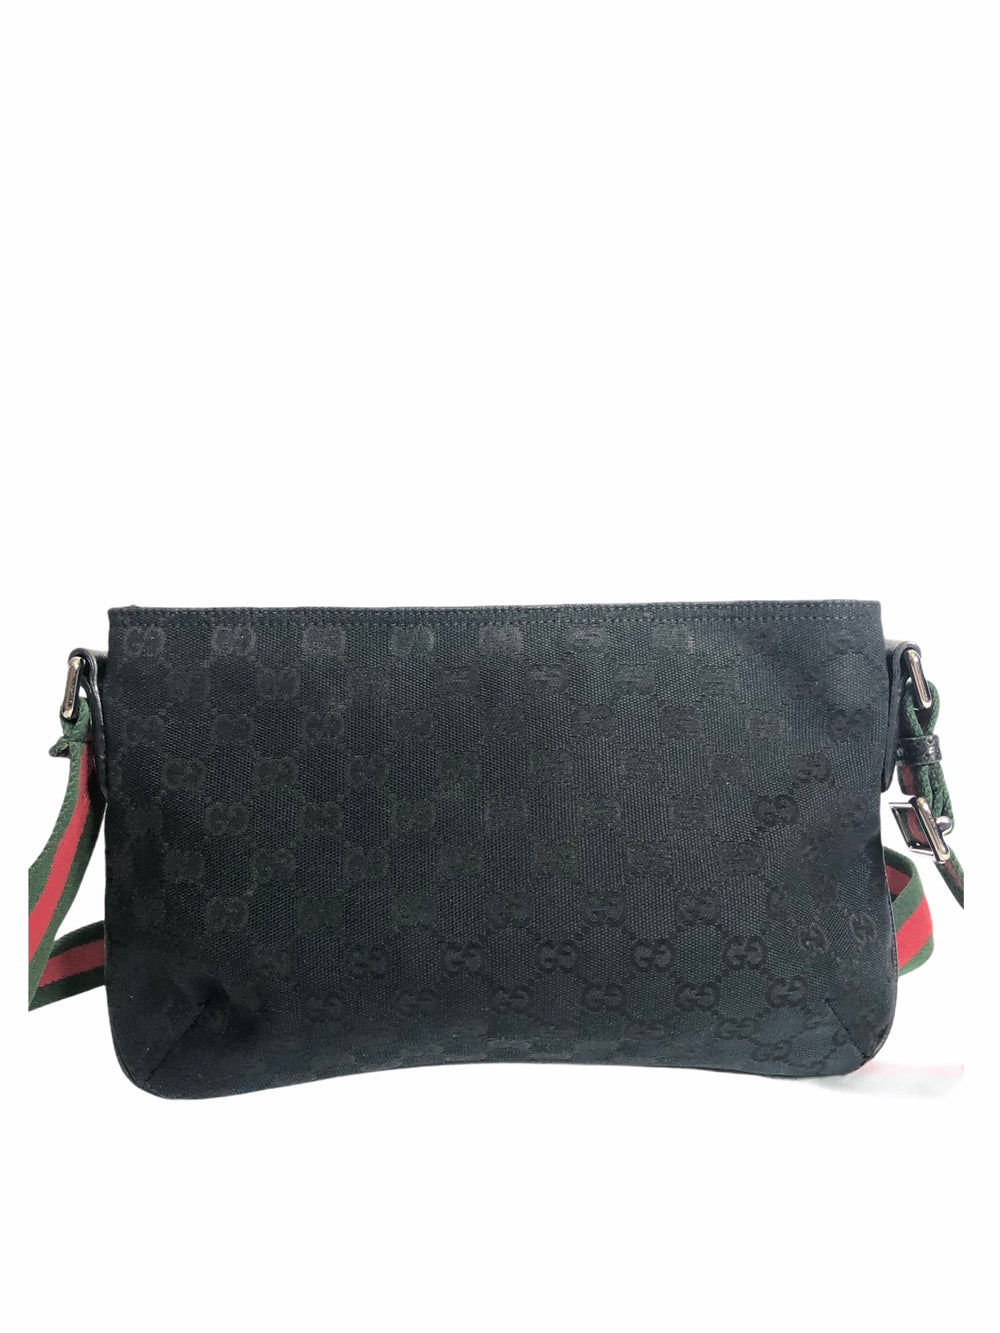 Gucci Black Monogram Canvas Crossbody - As Seen on Instagram 19/11/20